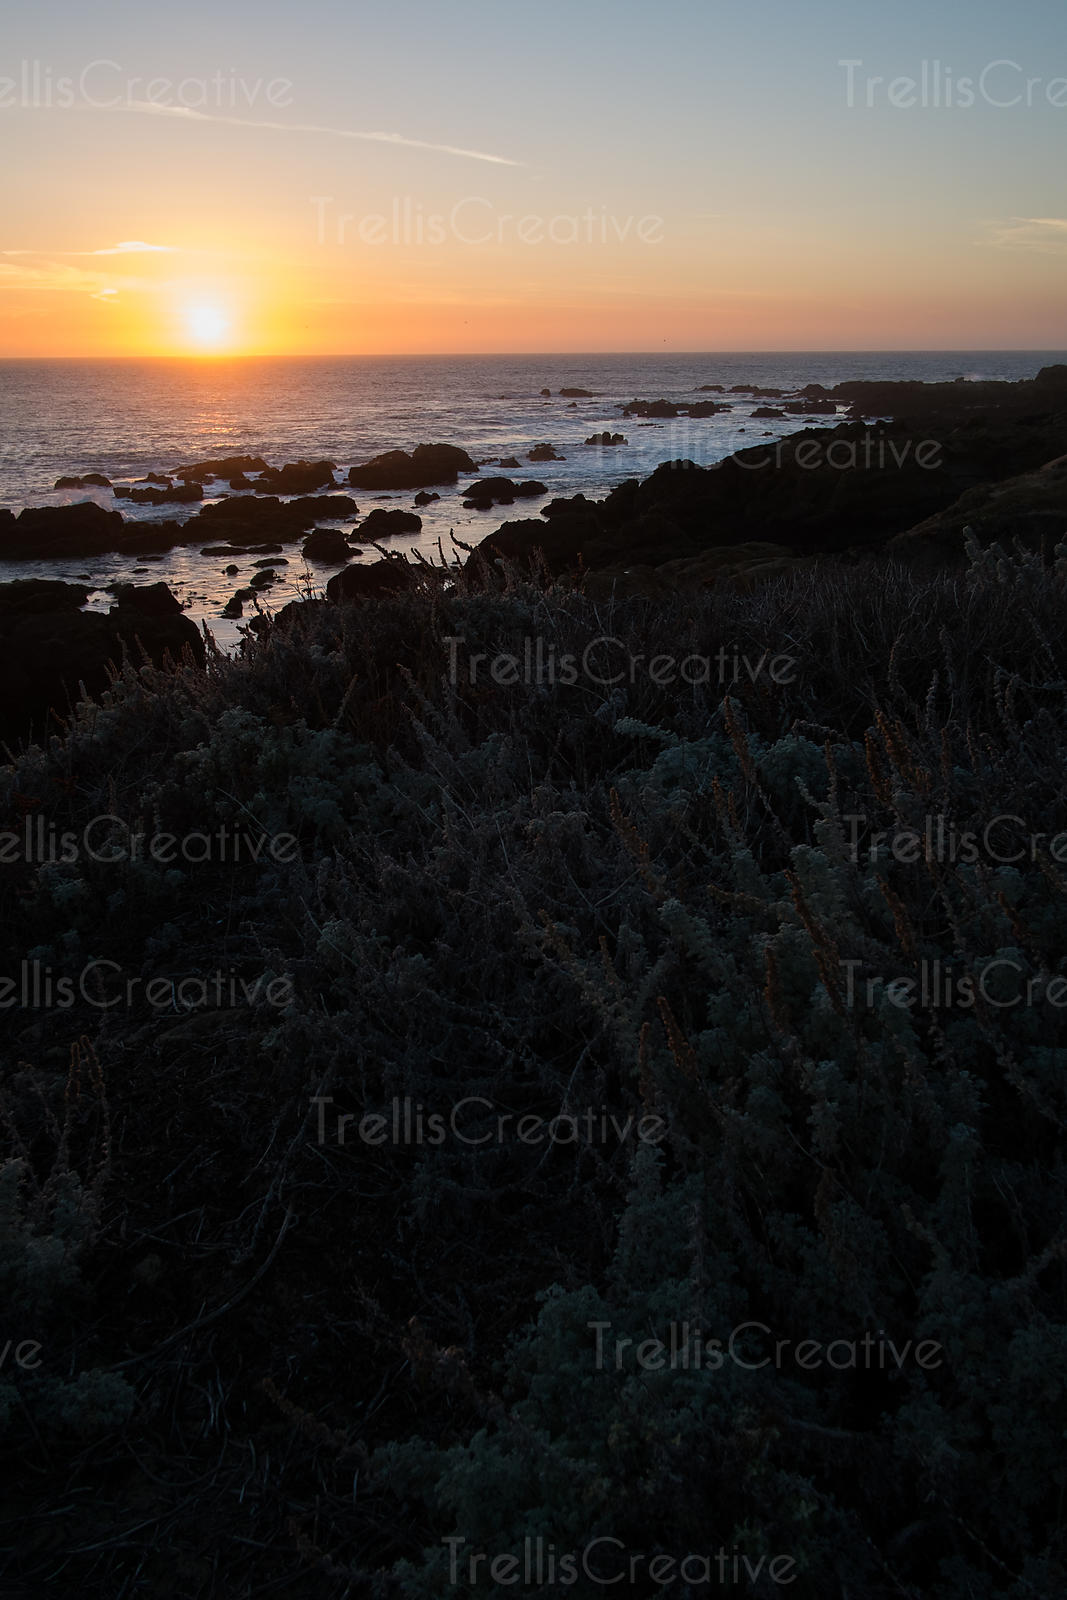 The setting sun on the rocky shores with beautiful coastal flora silouette